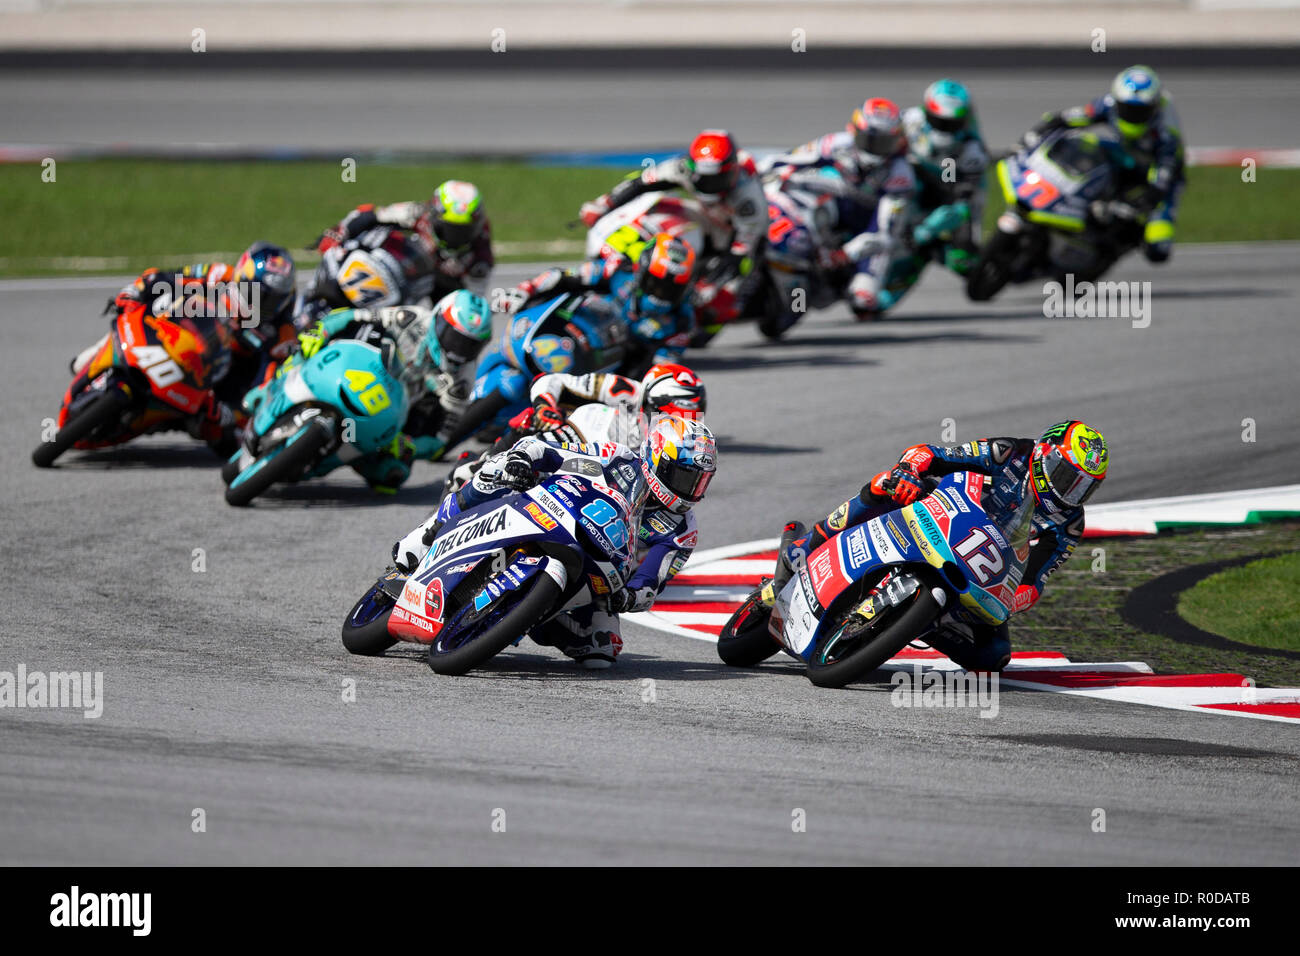 Sepang International Circuit Sepang Malaysia 4th Nov 2018